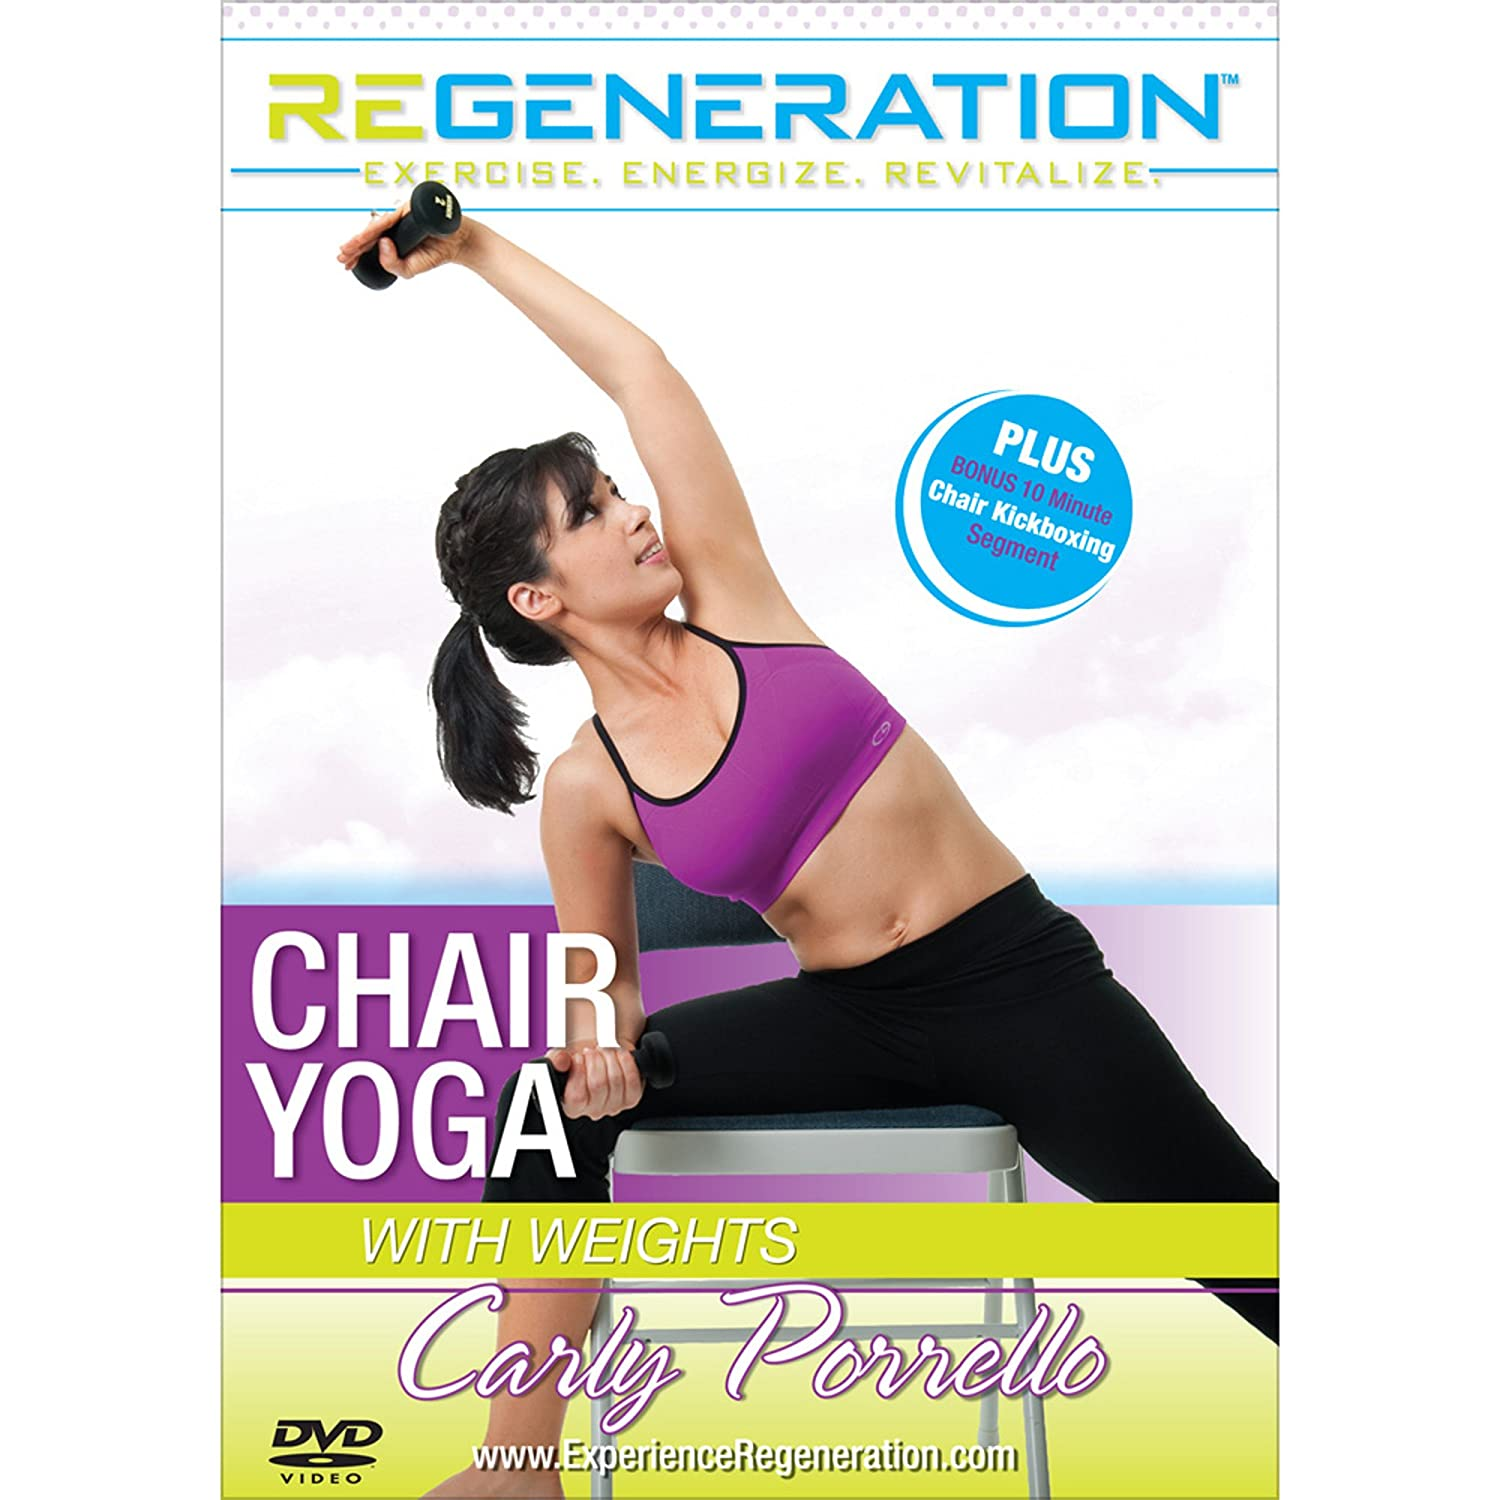 Amazon.com: Carly Porrellos Regeneration: Chair Yoga: Carly ...